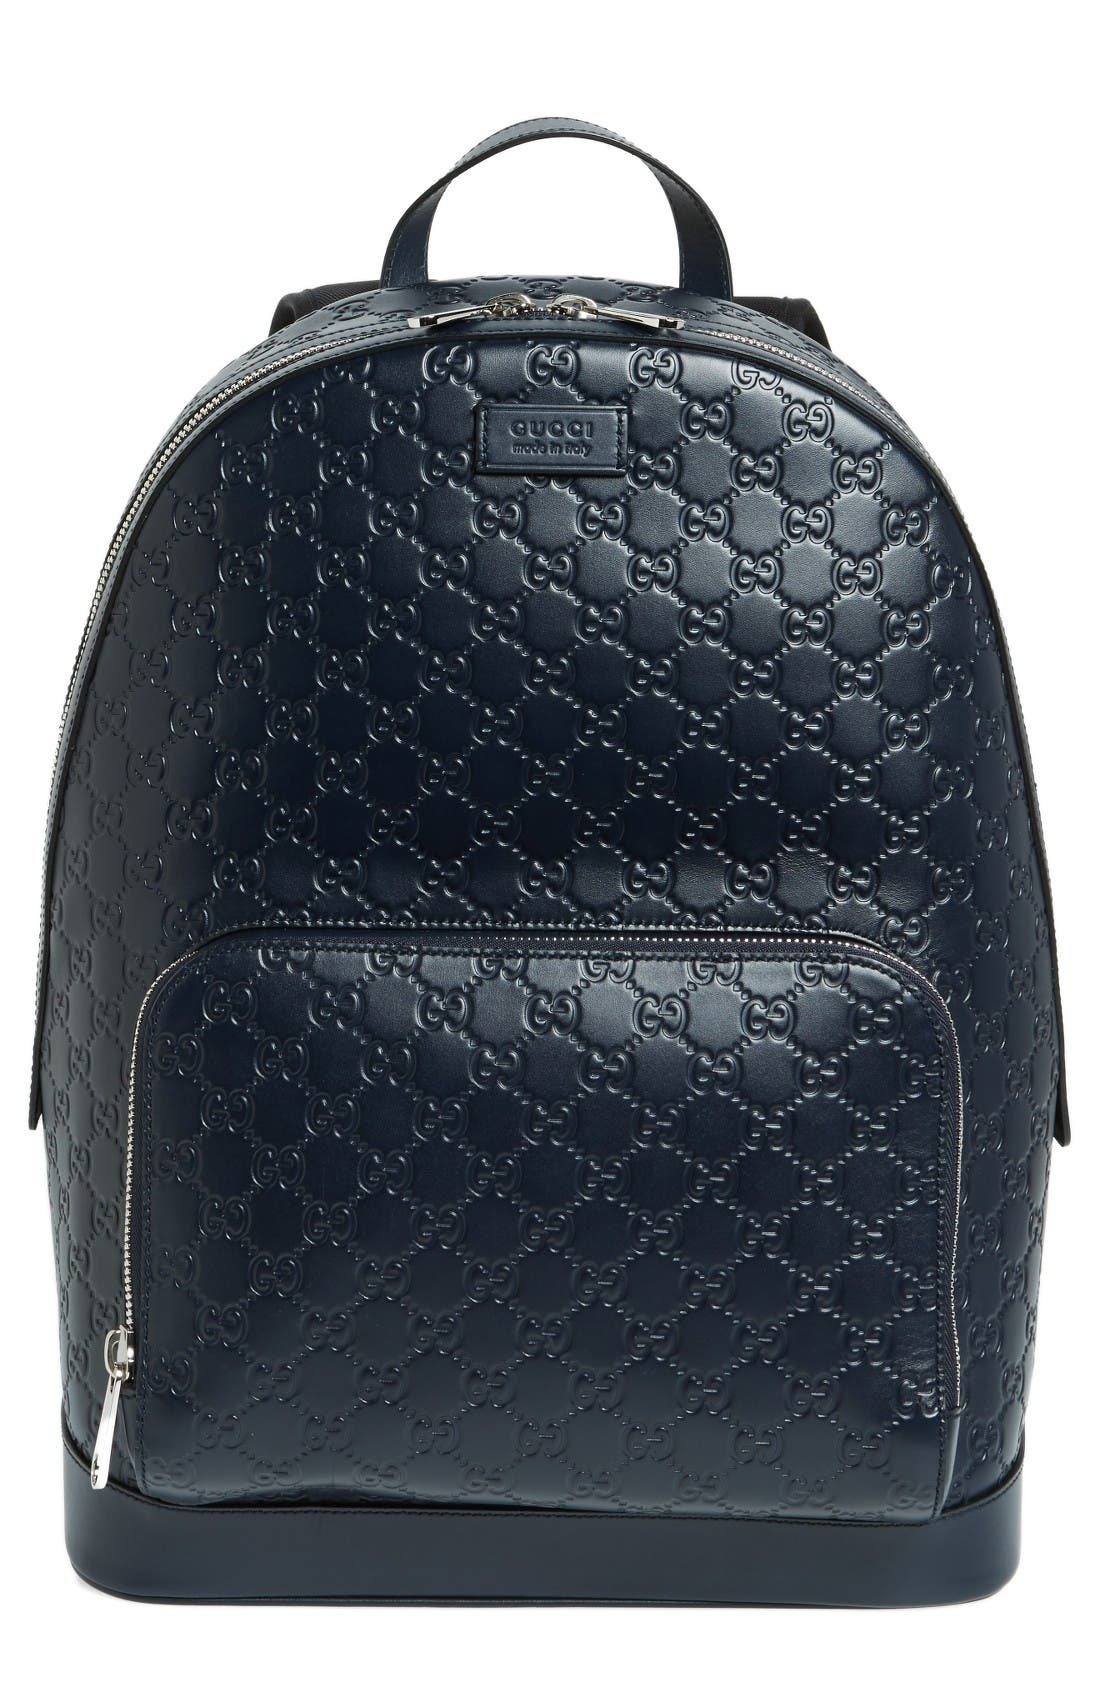 Main Image - Gucci Embossed Leather Backpack